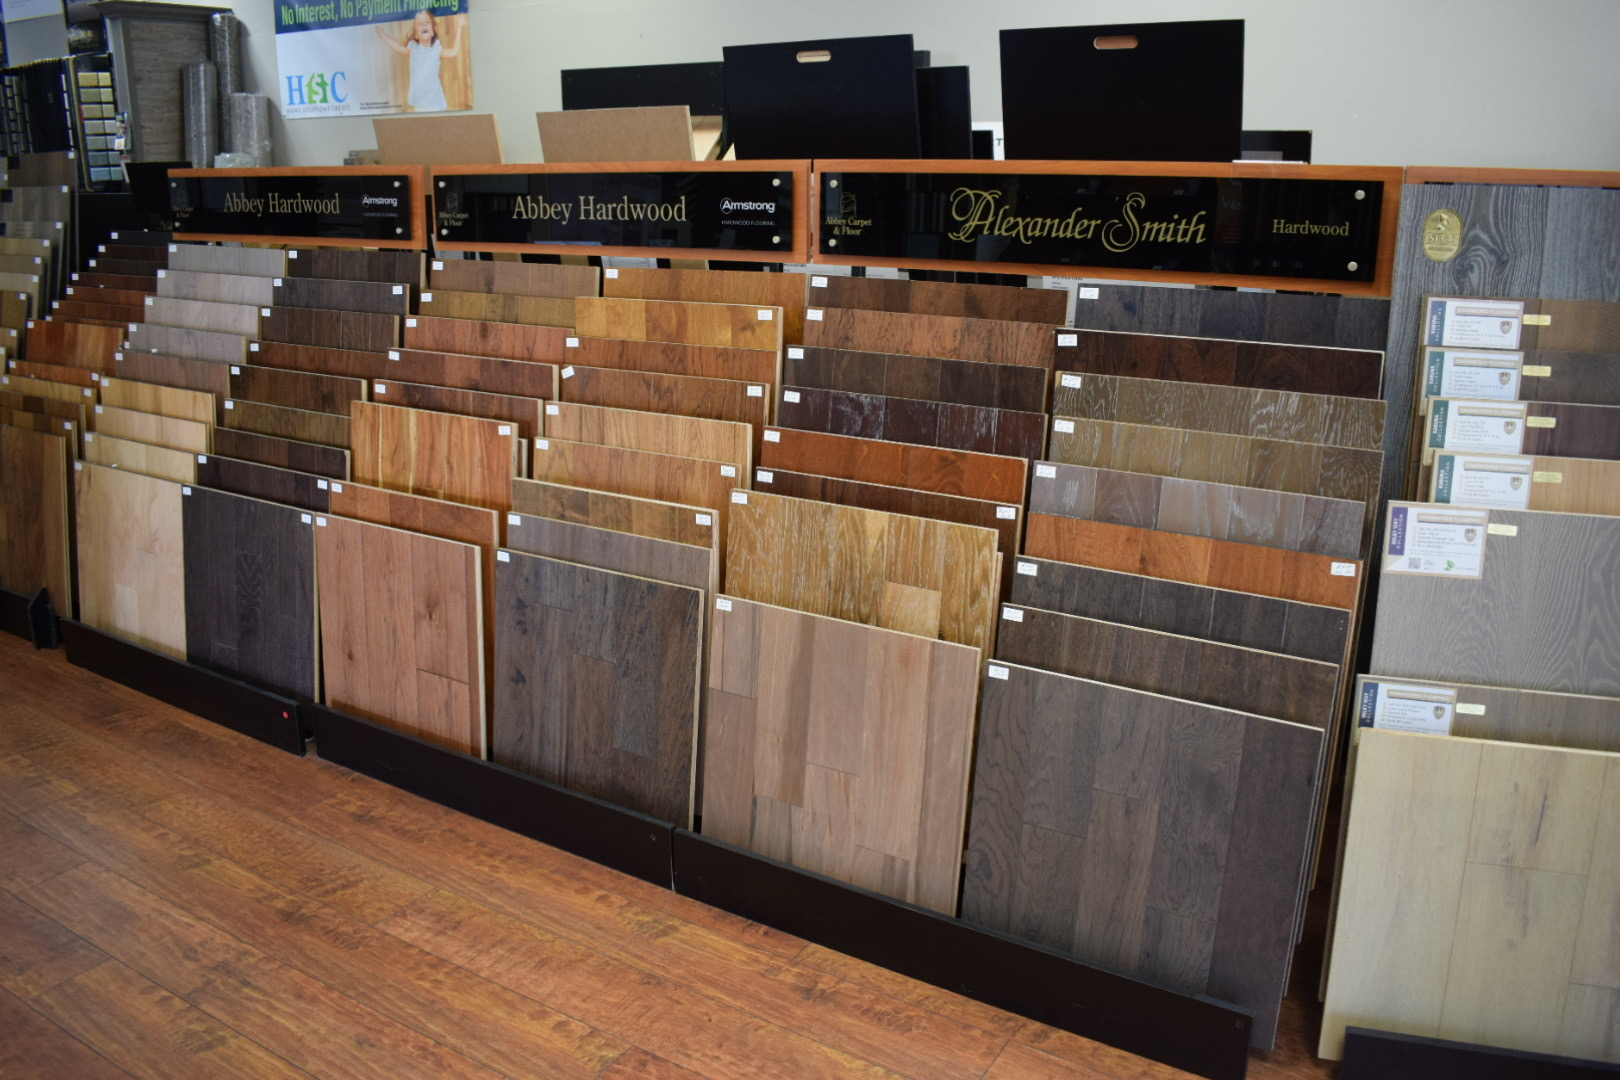 ABBEY HARDWOOD